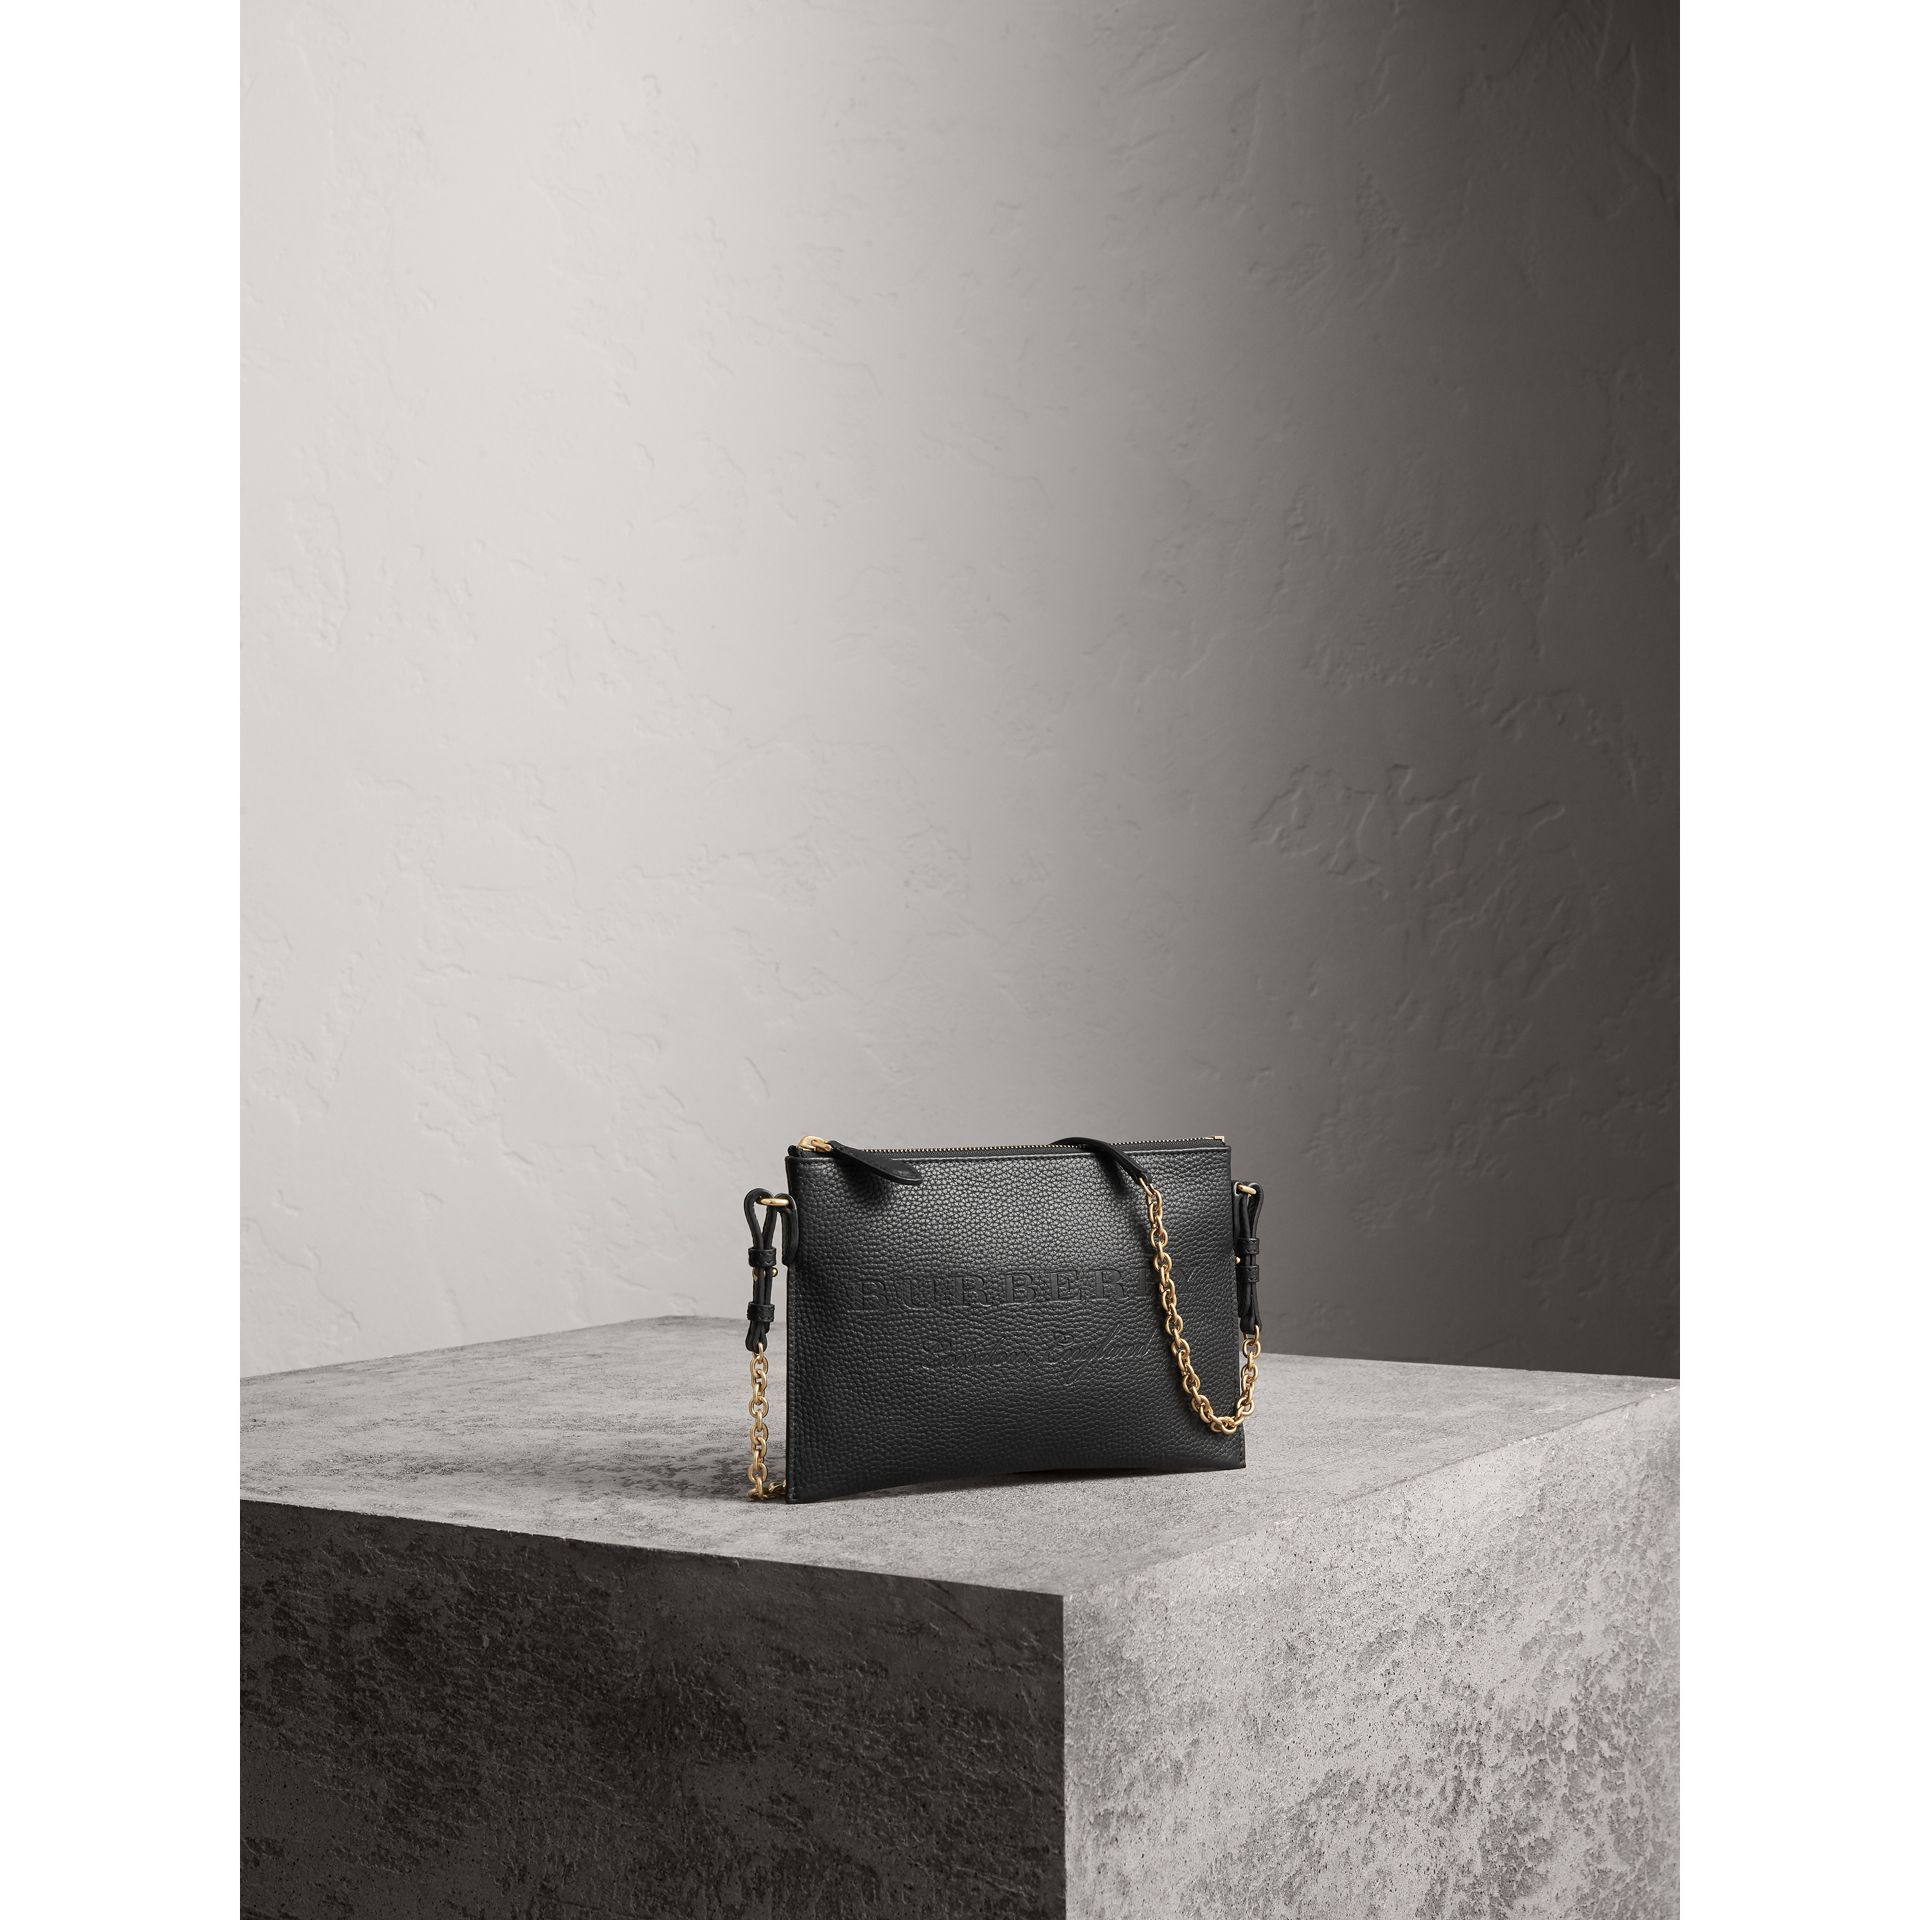 Embossed Leather Clutch Bag in Black - Women | Burberry - gallery image 6